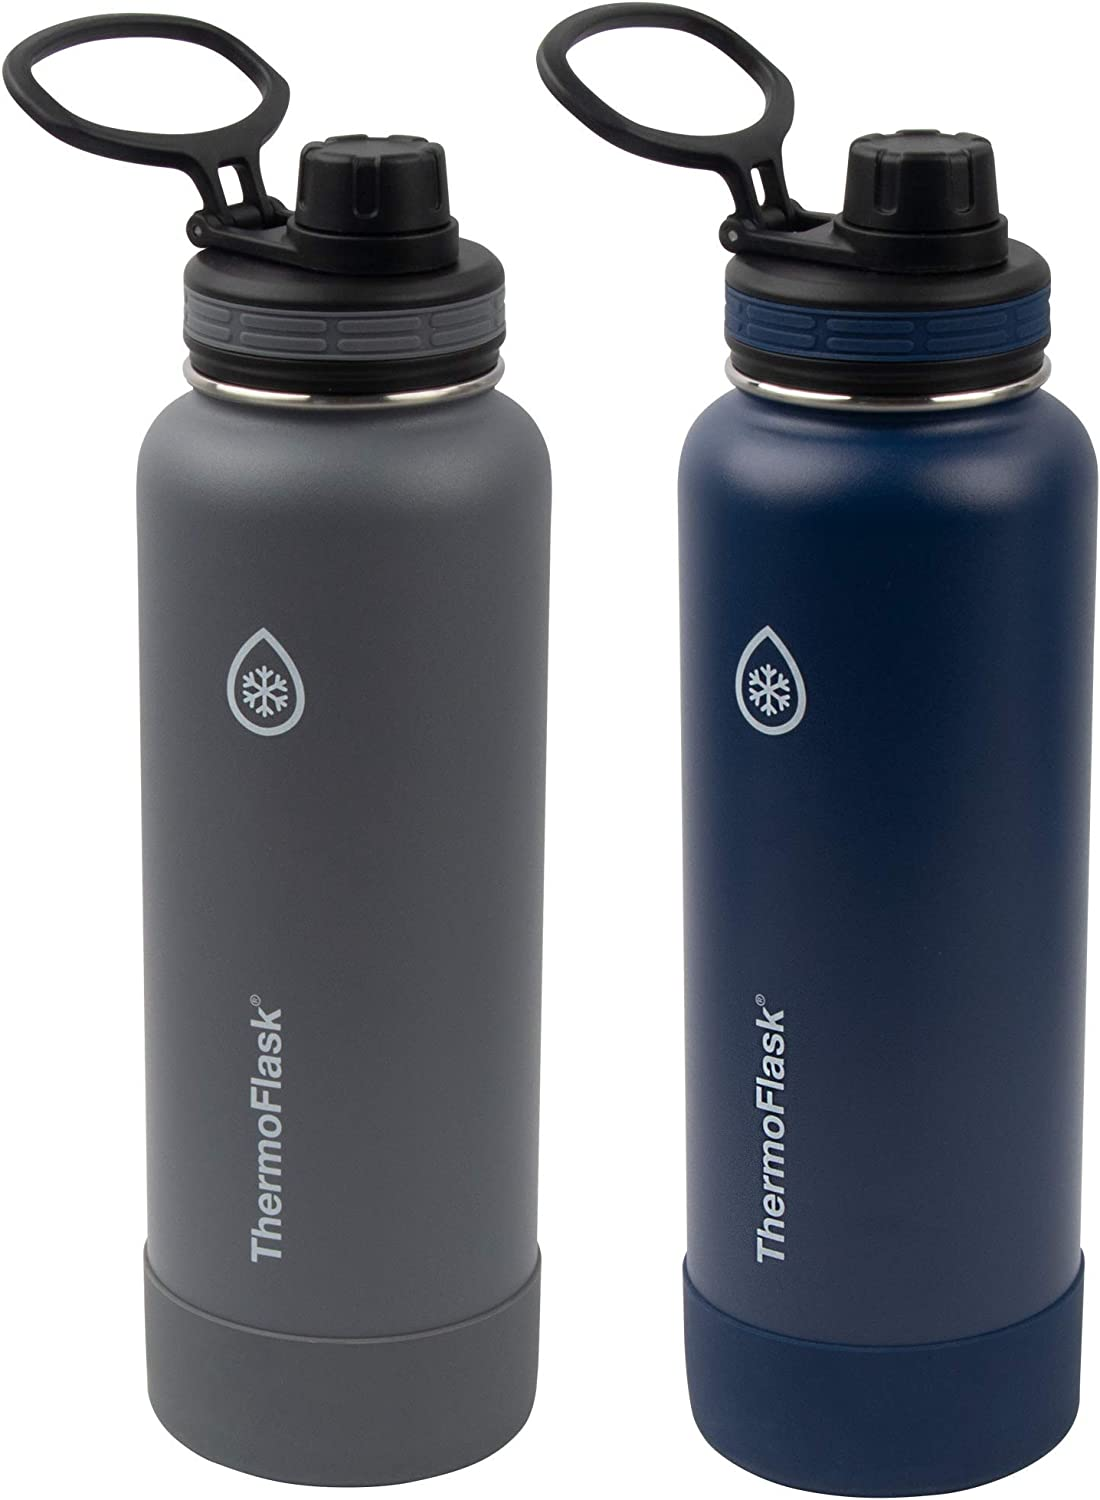 Thermoflask Double Wall Vacuum Insulated Stainless Steel Water Bottle 2-Pack